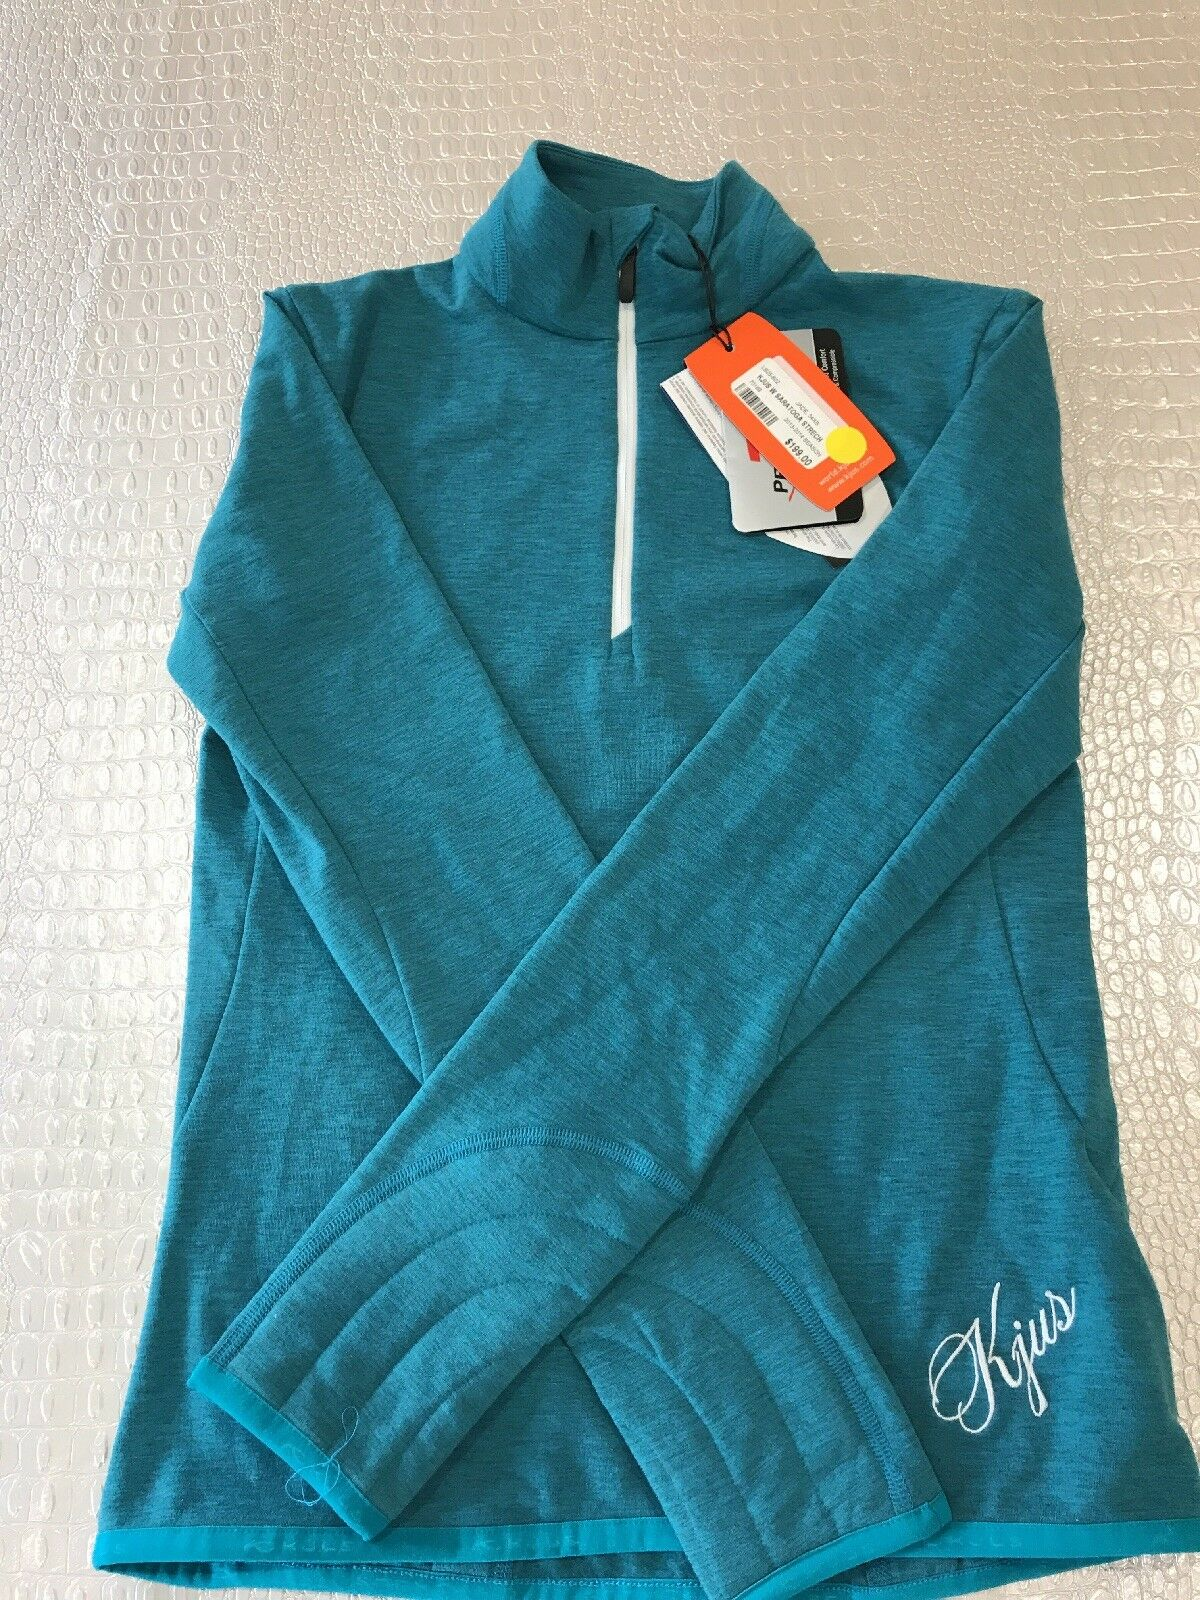 Kjus Womens Saratoga Stretch  Half Zip, size XS, New w Tags, Retail  199  great selection & quick delivery